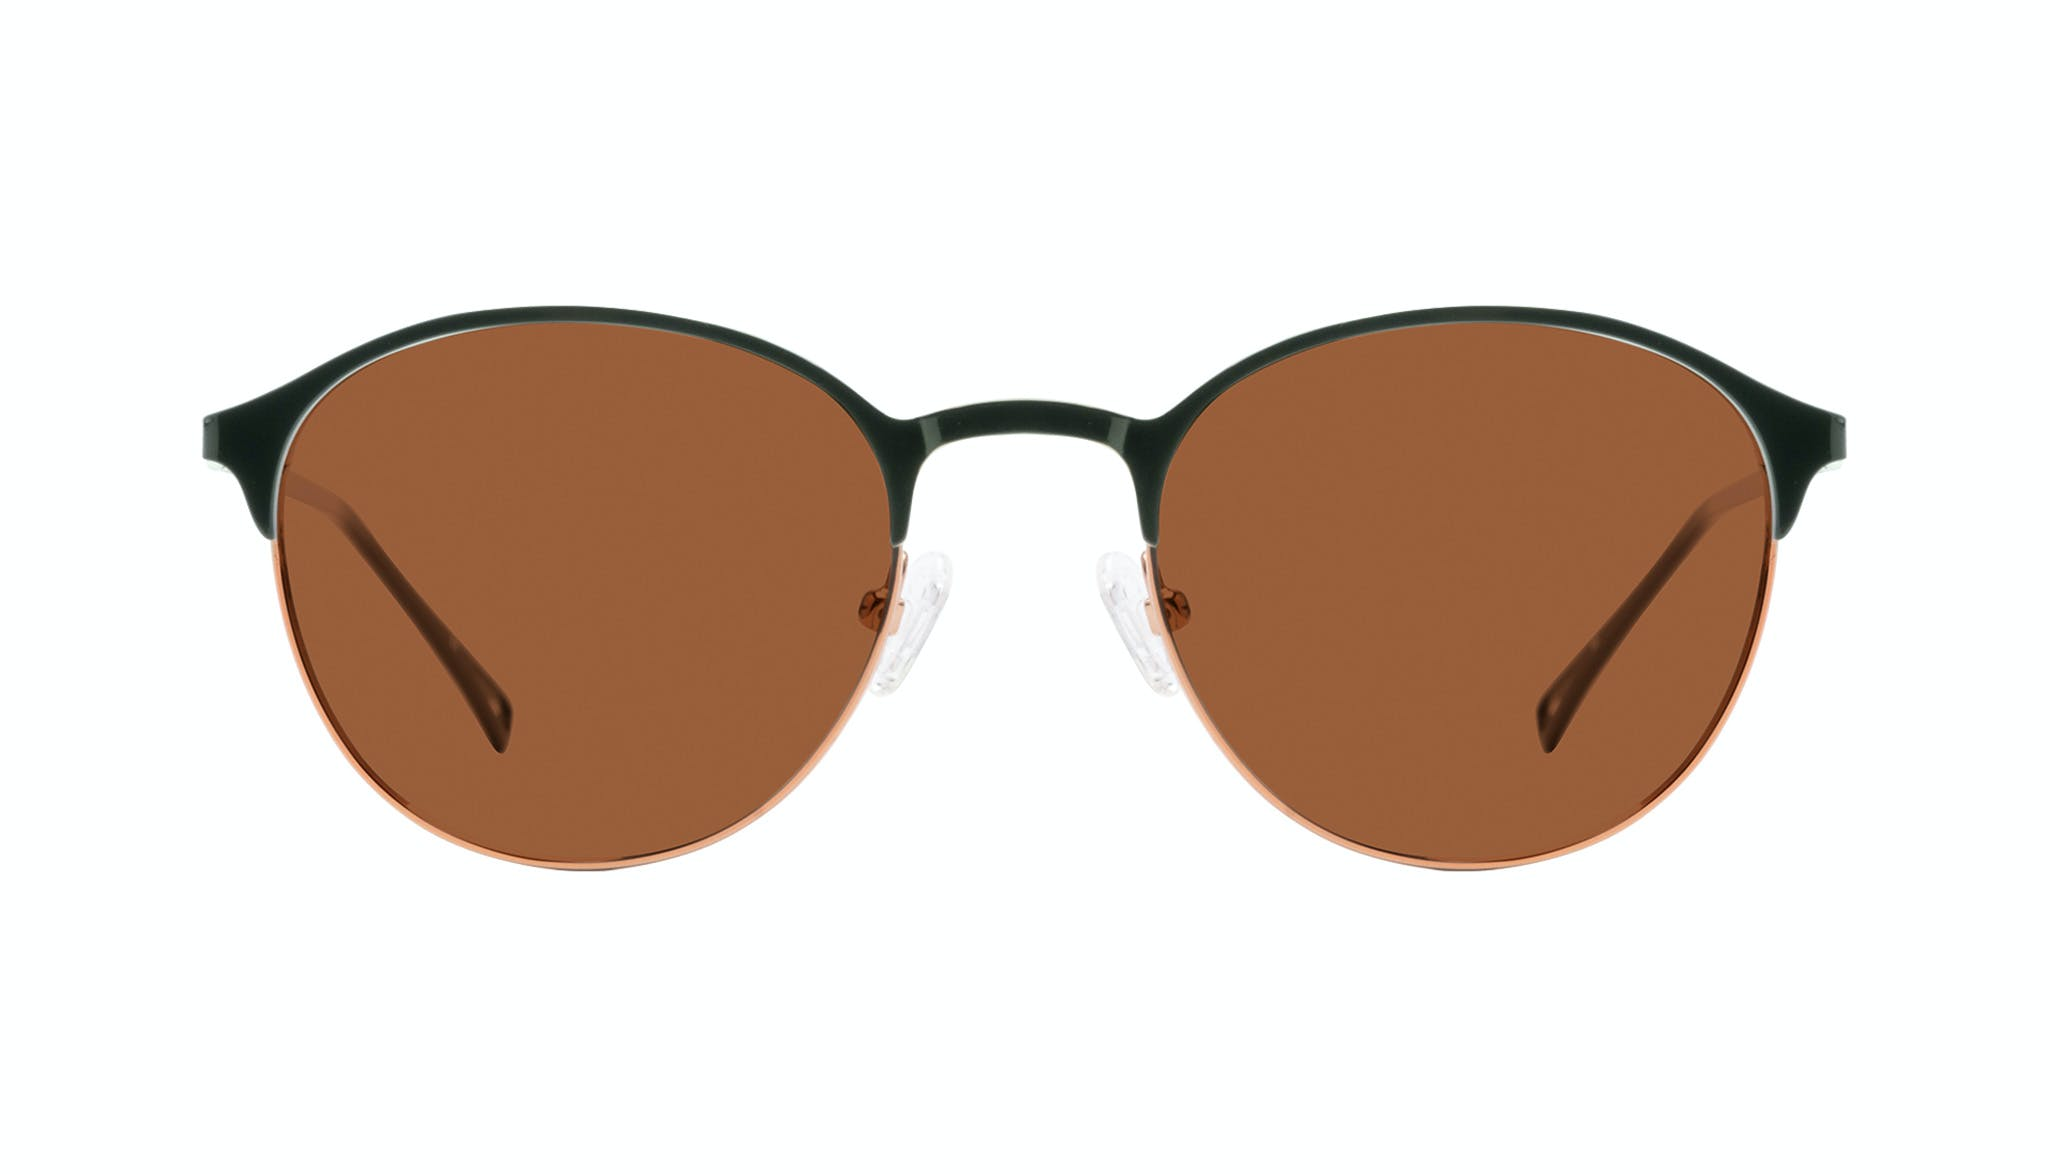 Affordable Fashion Glasses Round Sunglasses Women Bay Emeraude Front